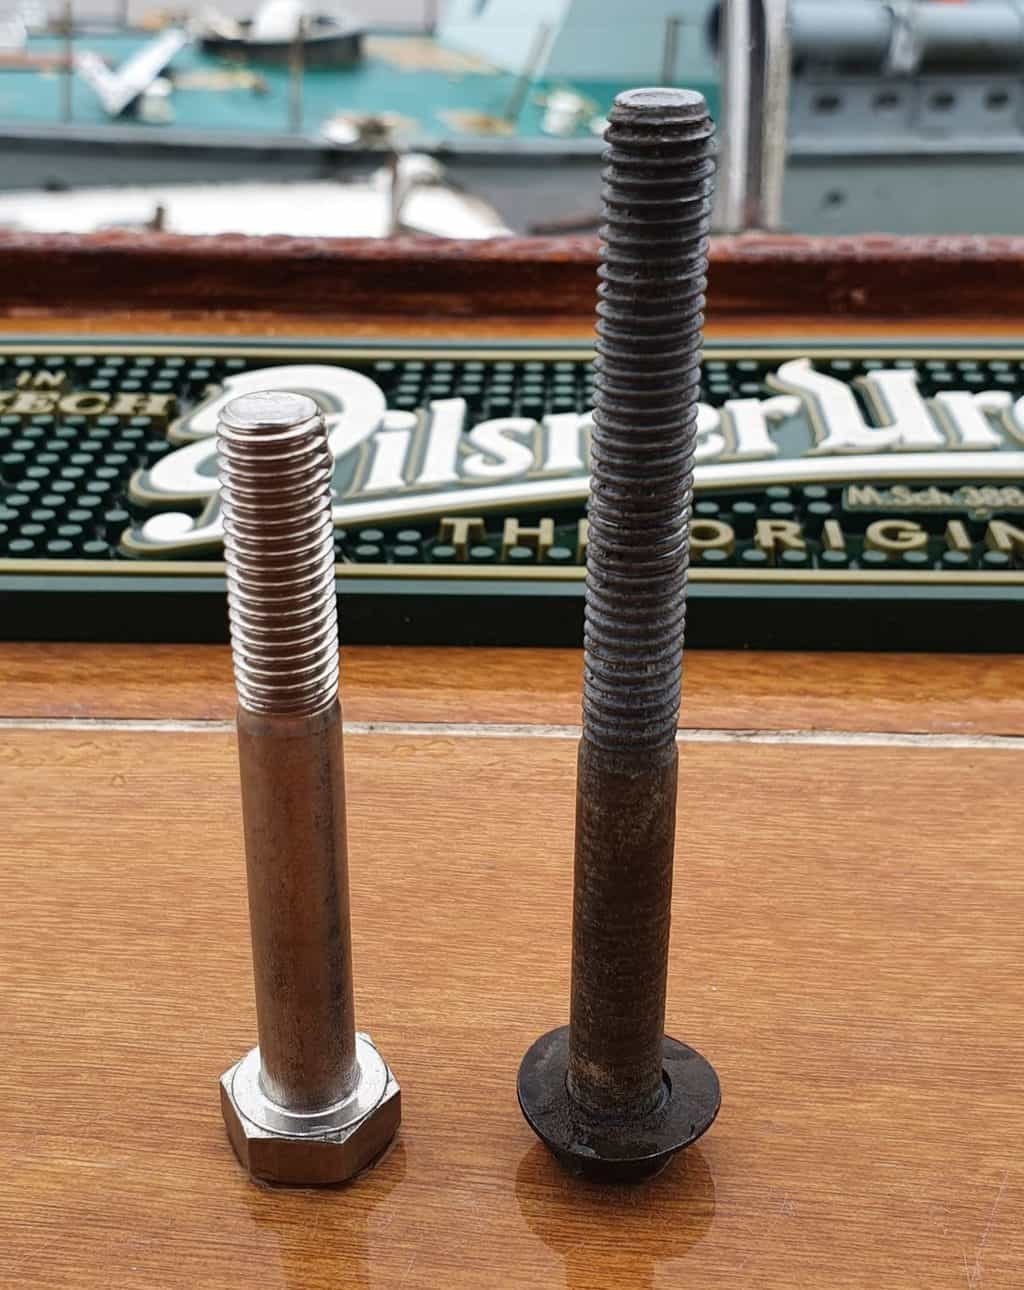 High Tensile Steel vs Stainless Steel Bolts